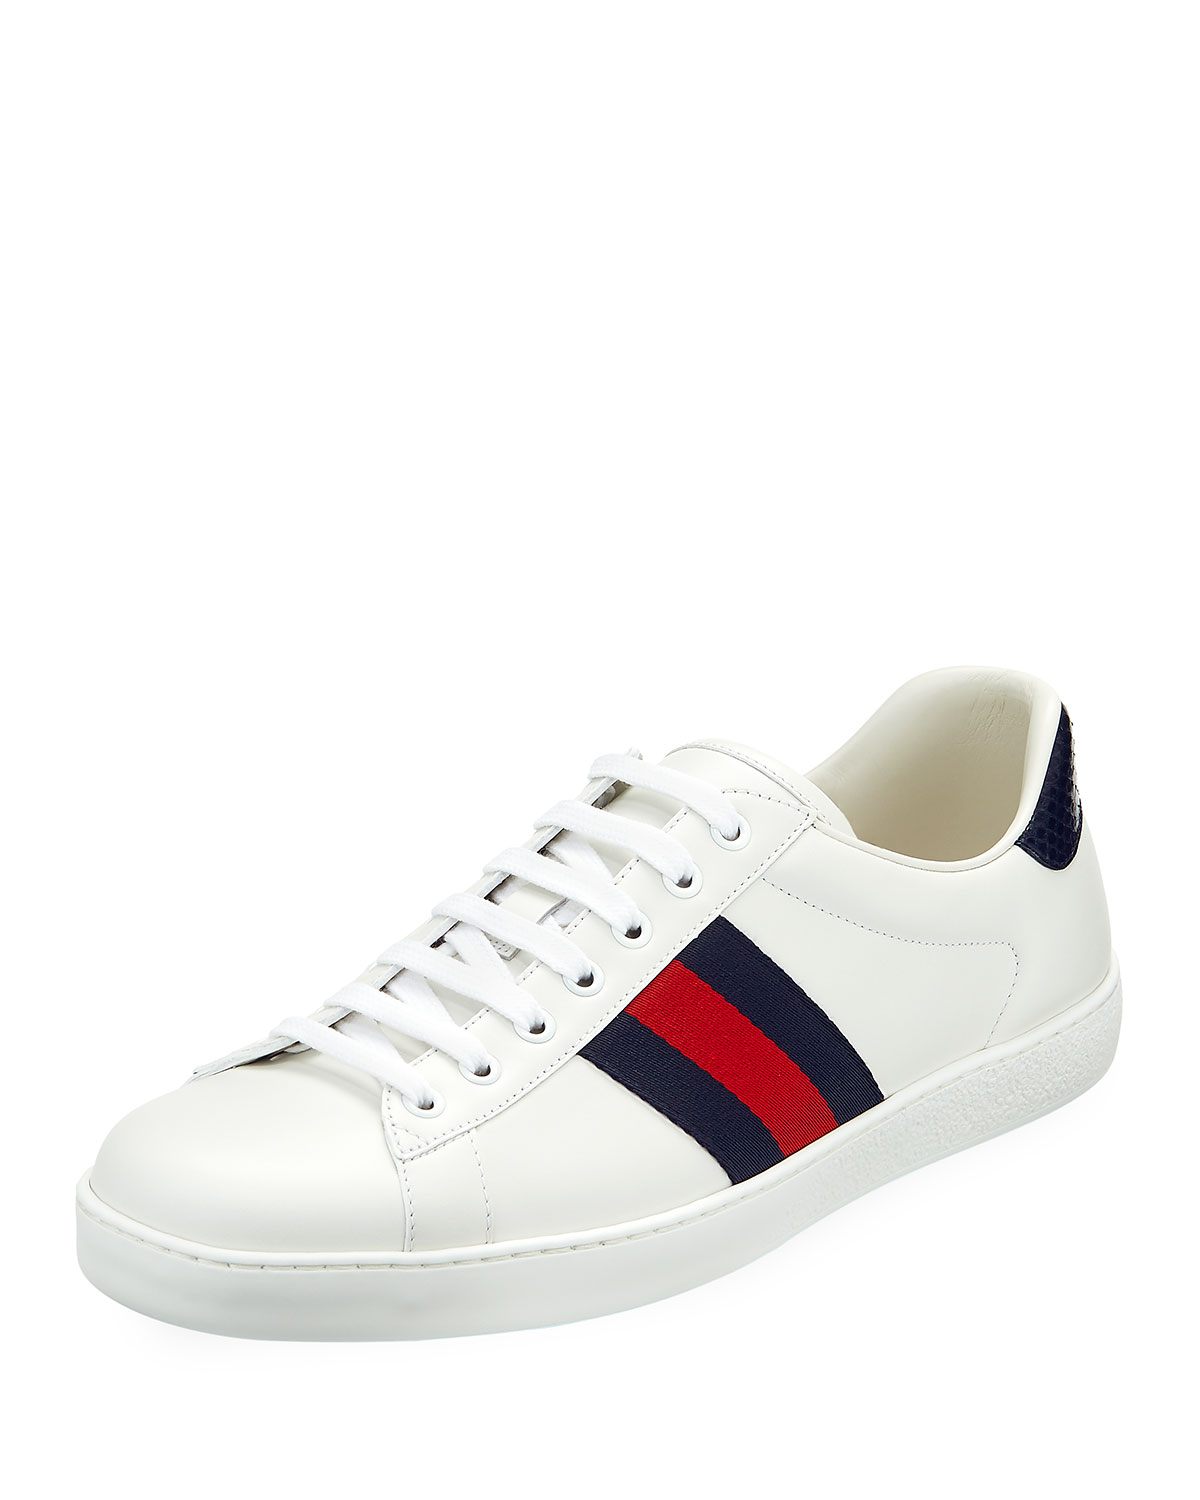 9700662cfdc Gucci Men s New Ace Leather Low-Top Sneakers